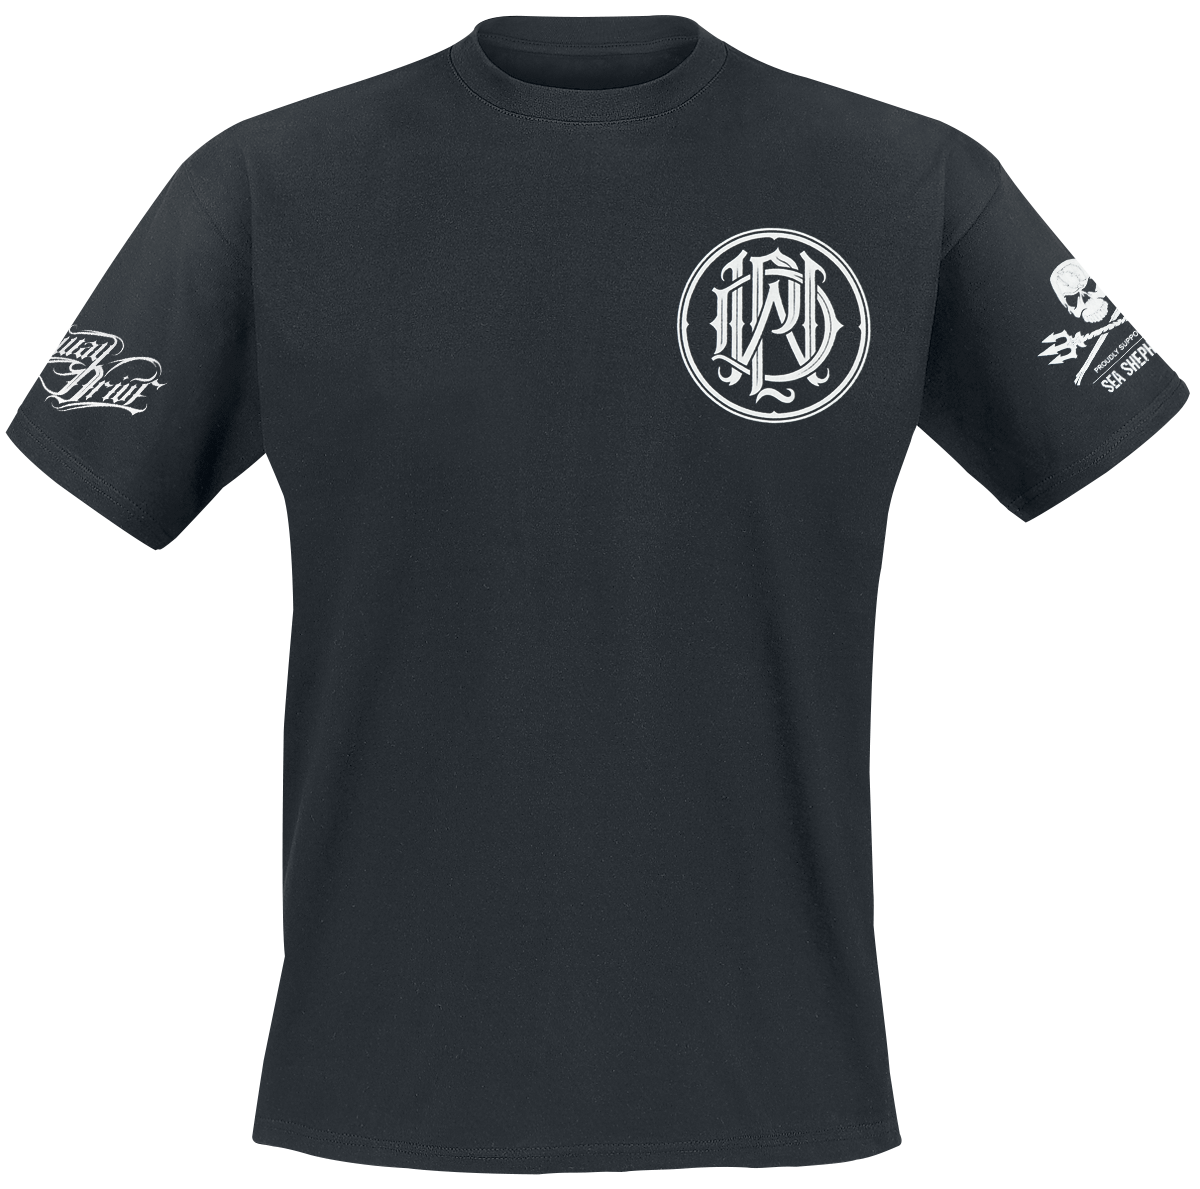 Parkway Drive - Sea Shepherd Cooperation - How Will You Justify - T-Shirt - black image